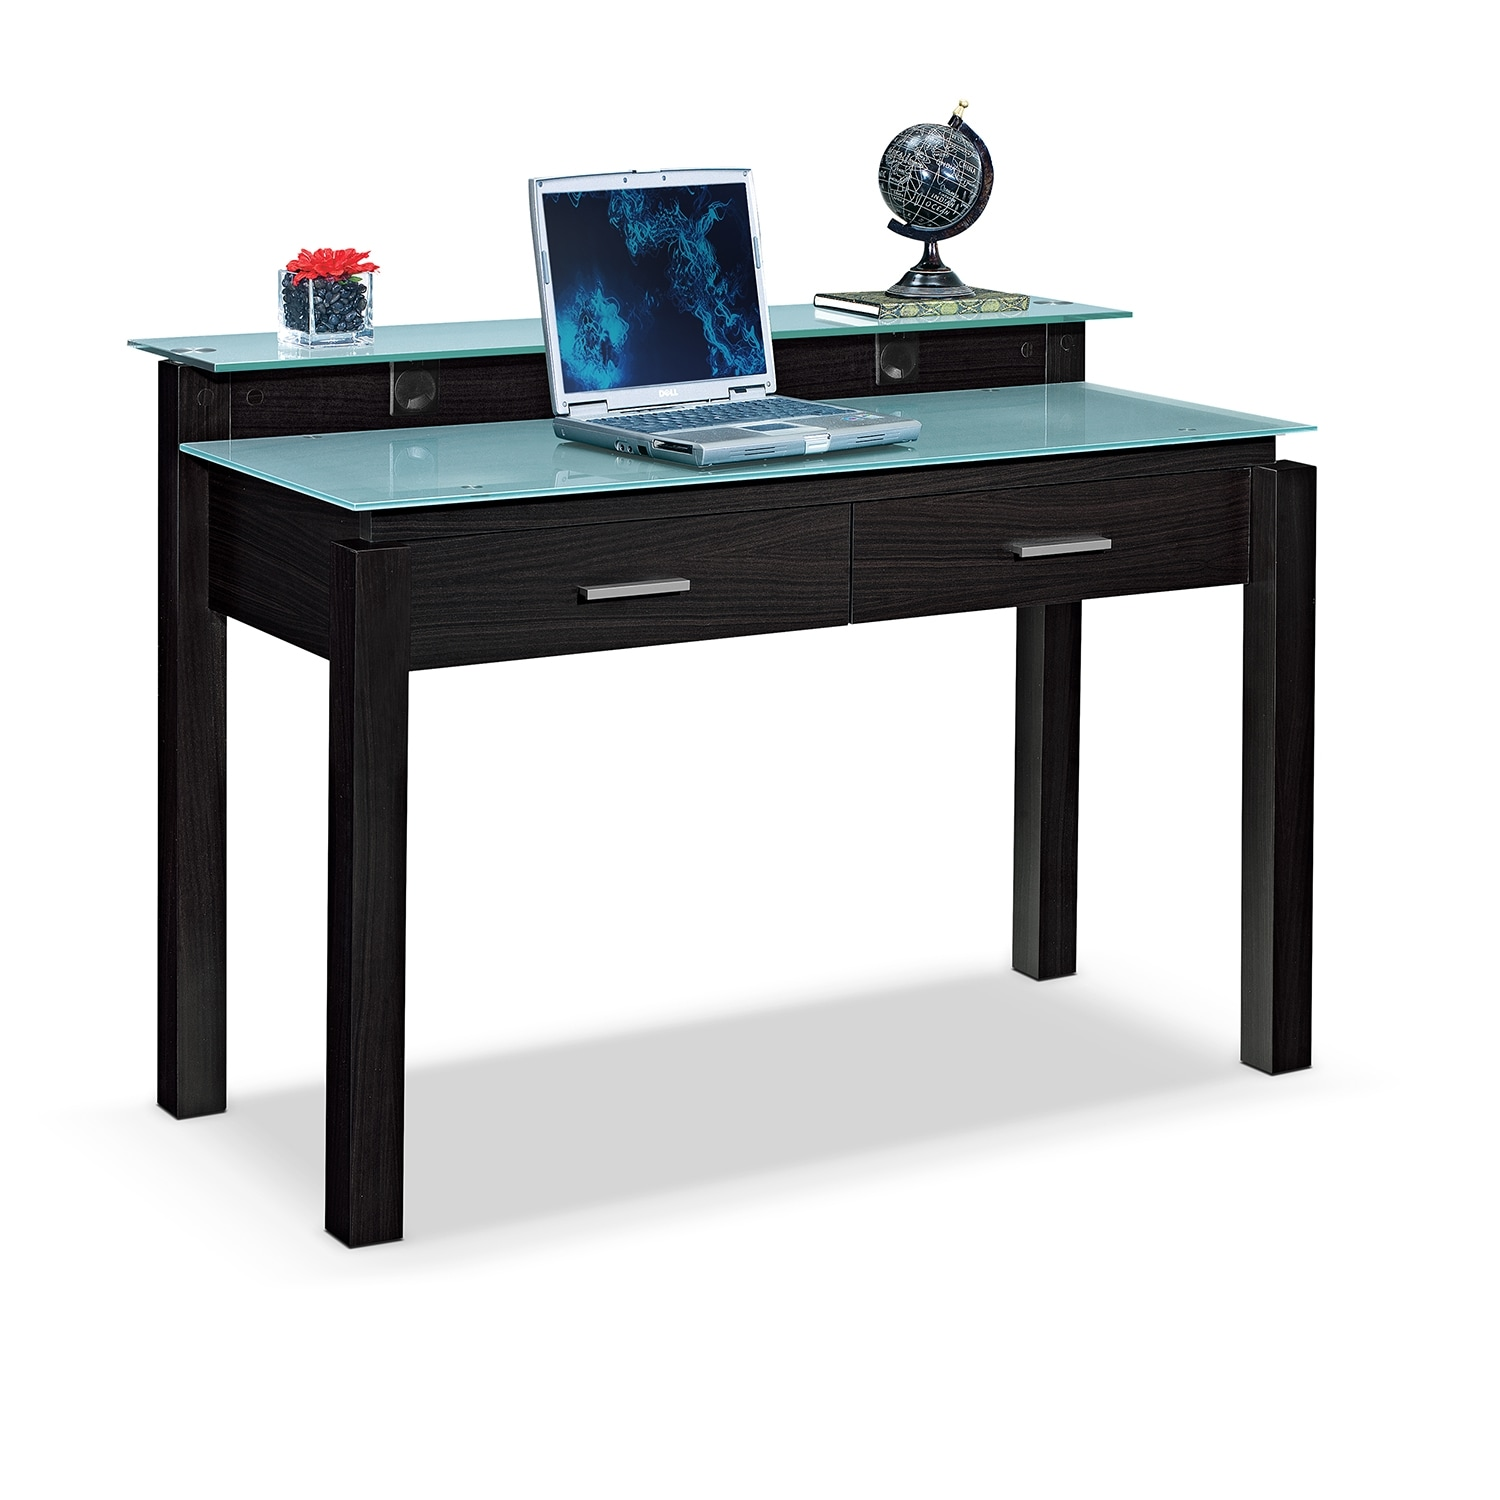 Home Office Furniture | Value City | Value City Furniture and Mattresses